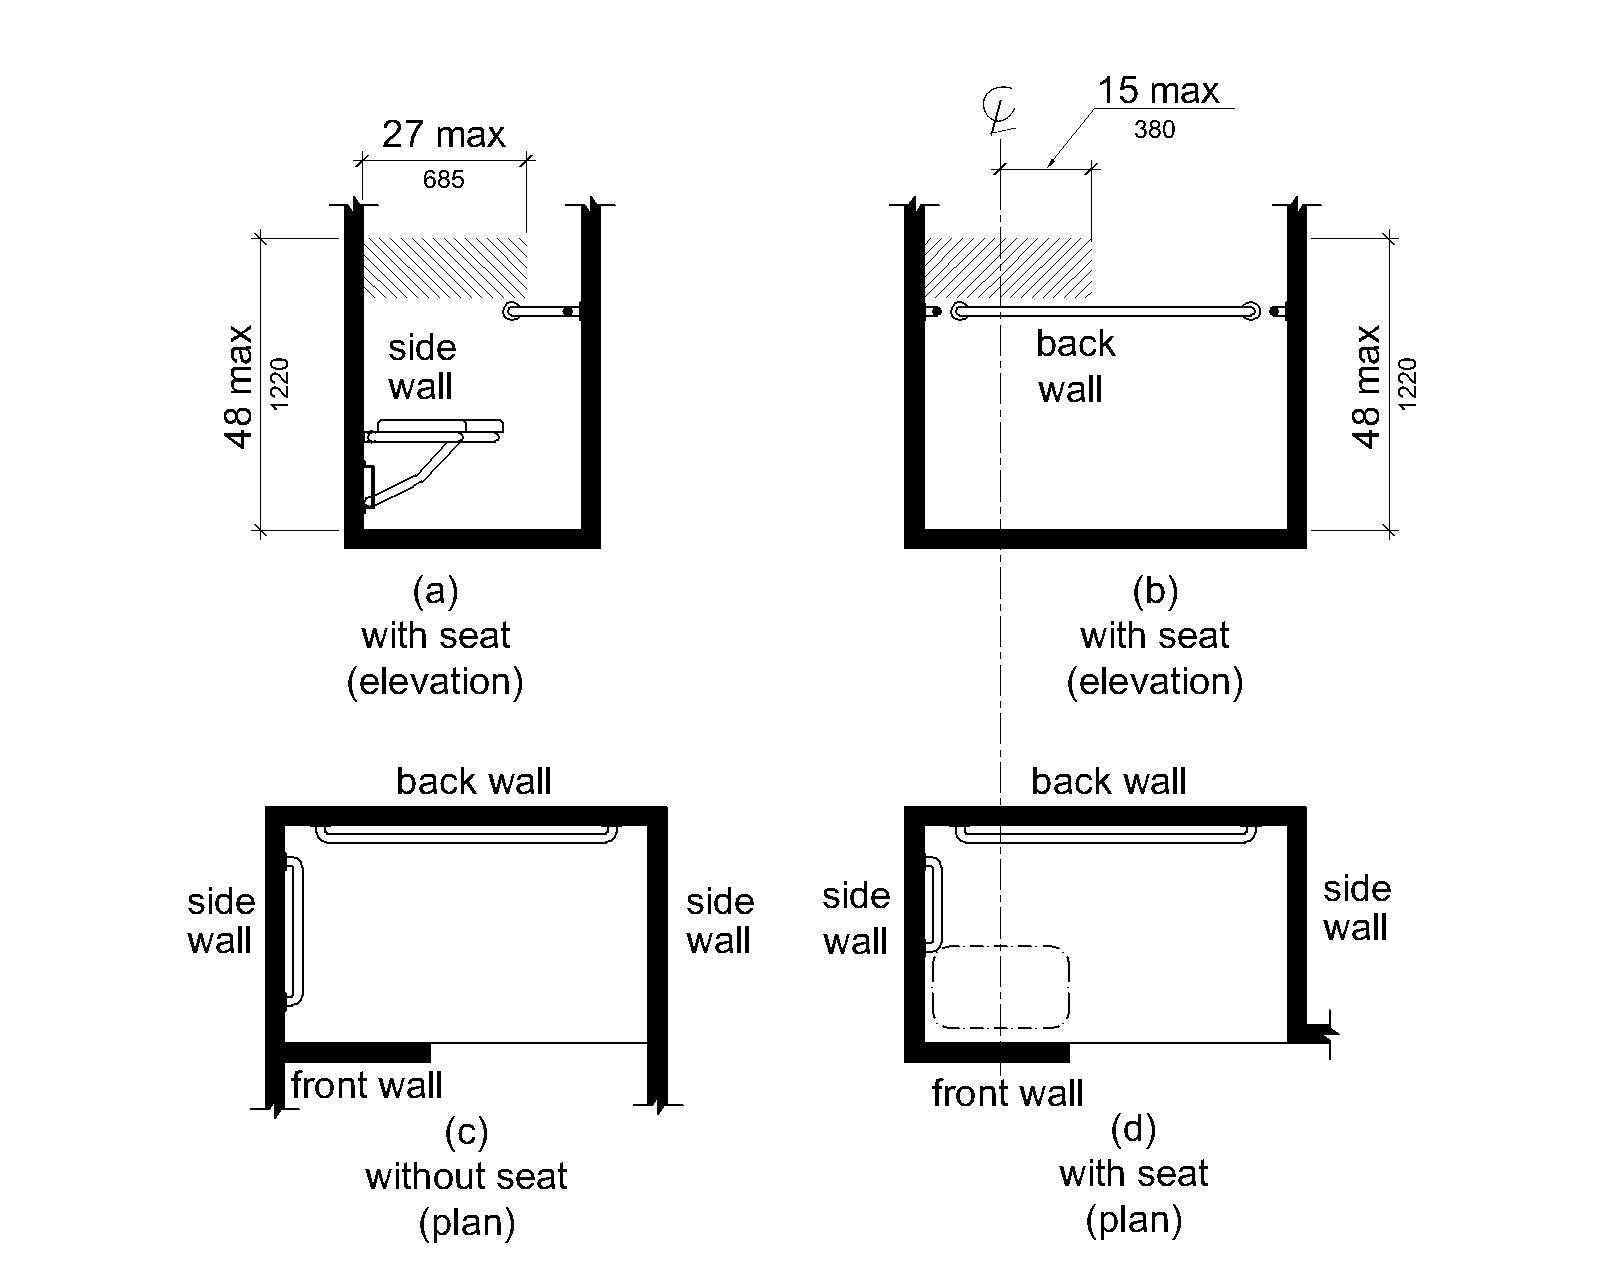 Figure (a) is an elevation drawing of a side wall adjacent to a seat. The area for controls, faucets and shower spray units is located on the side wall adjacent to the seat, above the grab bar but no higher than 48 inches (1220 mm) above the shower deck surface, and extending 27 inches (685 mm) maximum from the seat wall. Figure (b) shows an alternate location on the back wall, above the grab bar but no higher than 48 inches (1220 mm) above the shower deck surface, and extending from the side wall to 15 inches (380 mm) maximum from the center line of the seat. Figures (c) and (d) are plan views of compartments without and with a seat, respectively.